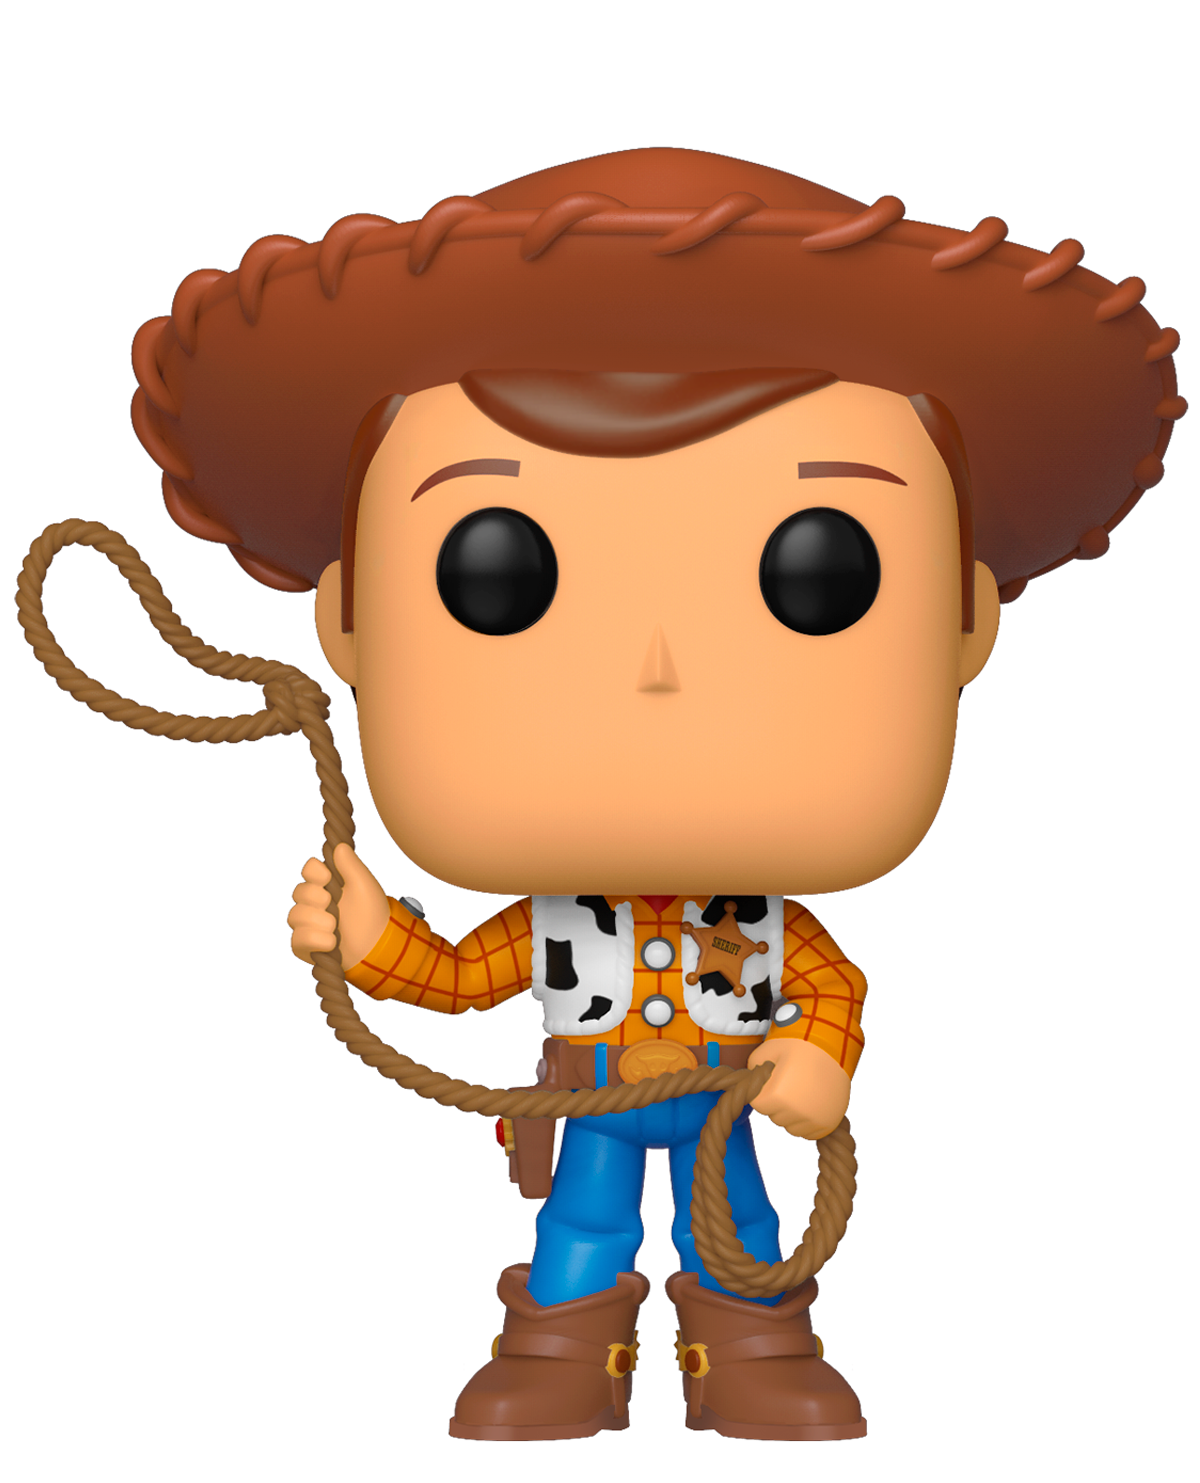 Figura Pop Toy Story 4 Woody Para Pro Gameplanet Gamers